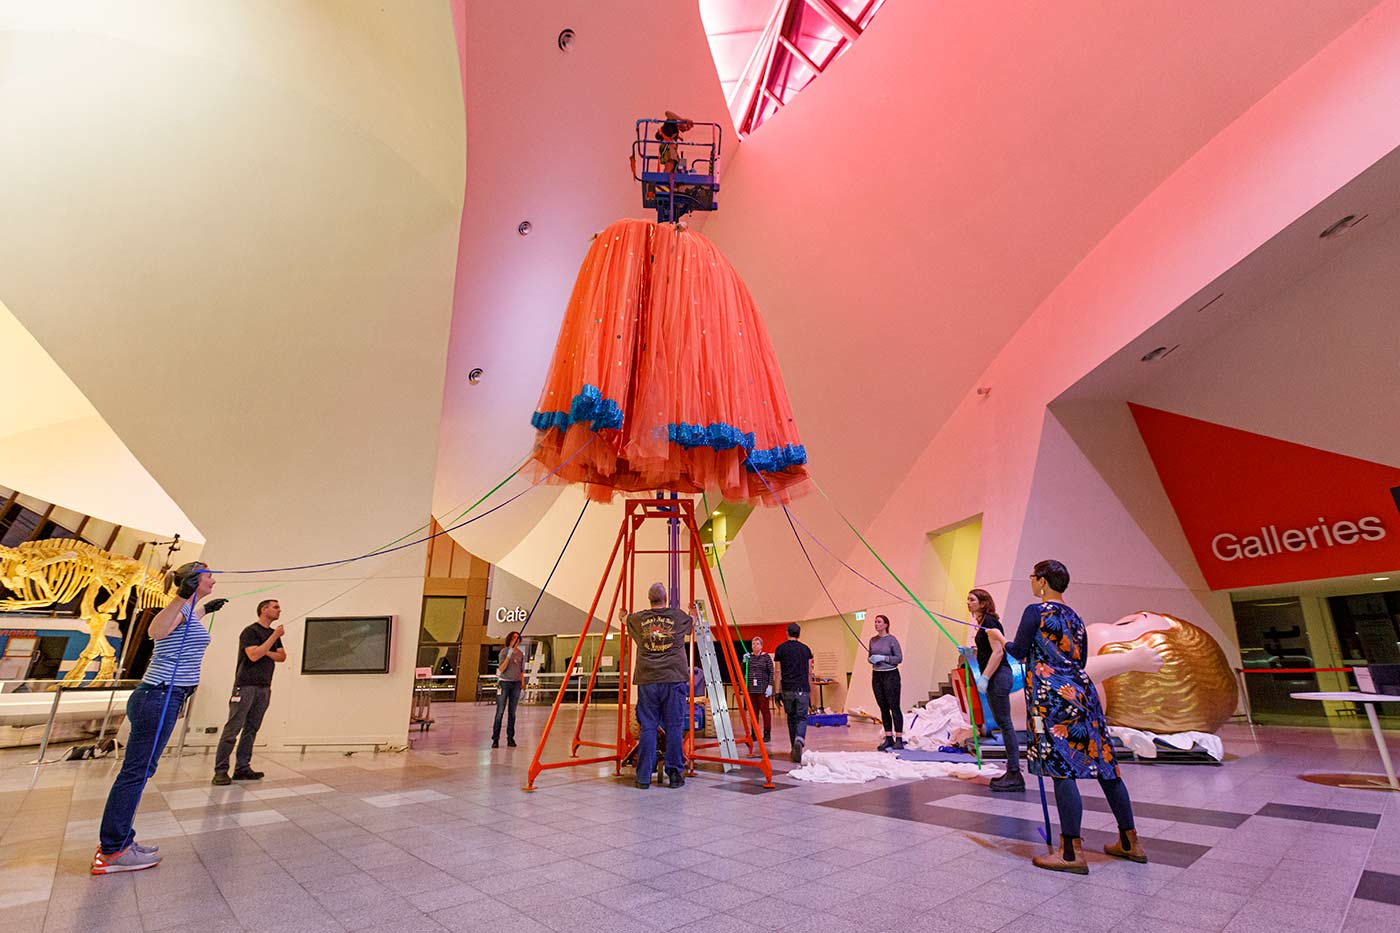 Colour photograph of staff installing a large peach skirt with blue trimming in a large hall. - click to view larger image